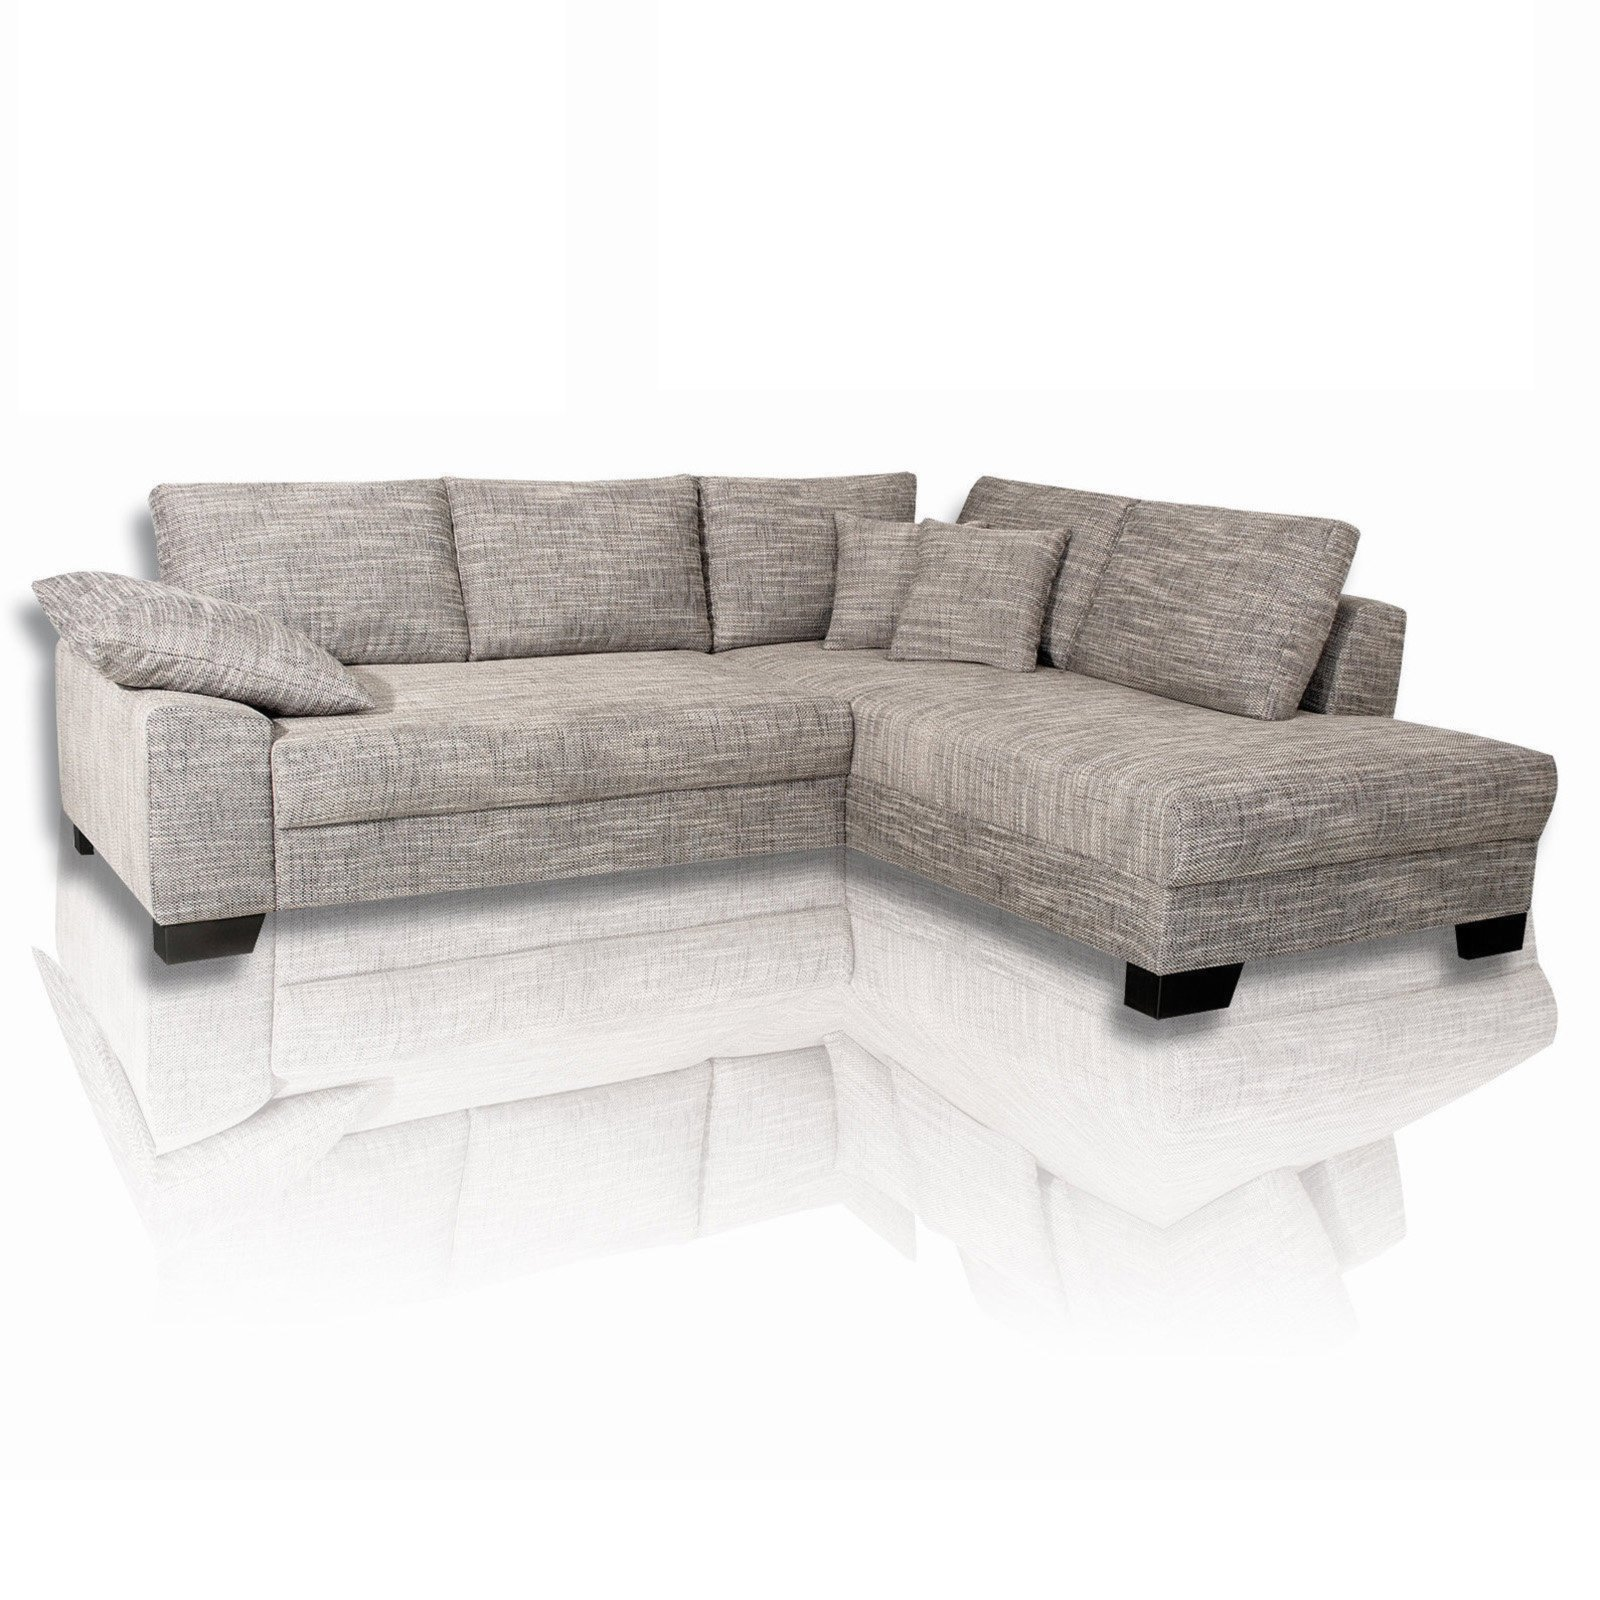 Sofaecke Excellent Full Size Of Ideen Big Sofa Ecke Besten Sofas Graue Eckcouch Free Sofa Grau Leder Lovely Big Sofa